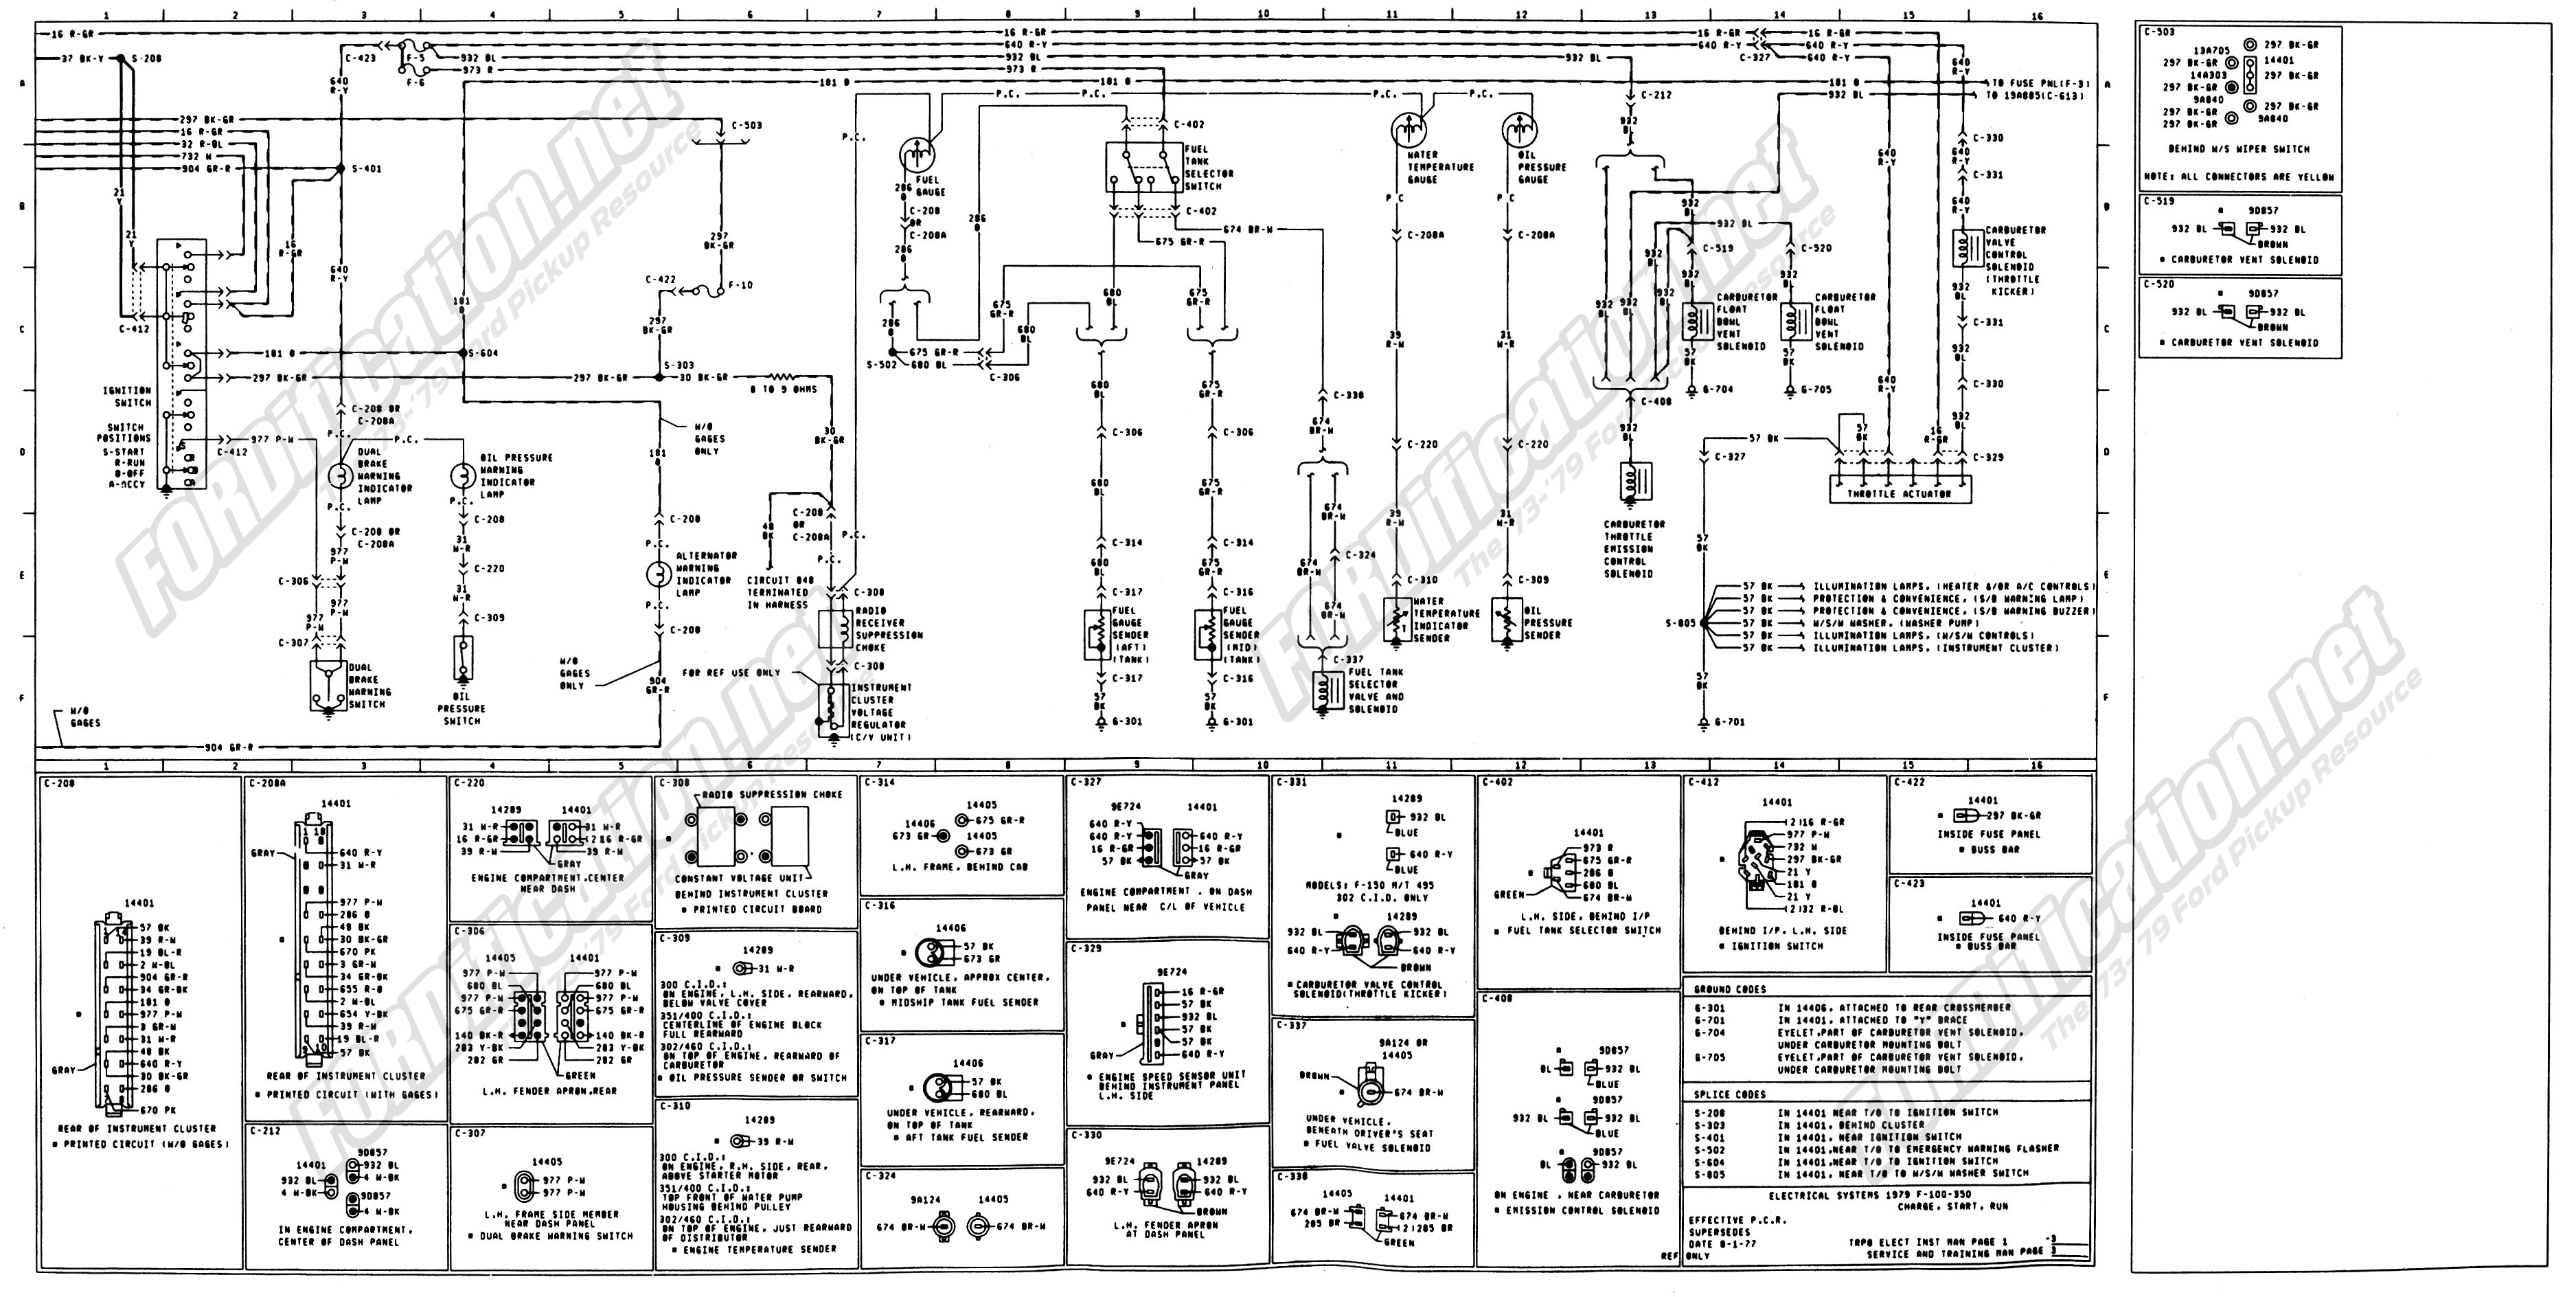 2001 F350 Powerstroke Fuel Pump Wiring Diagram | Wiring Liry F Fuel Pump Wiring Diagram on